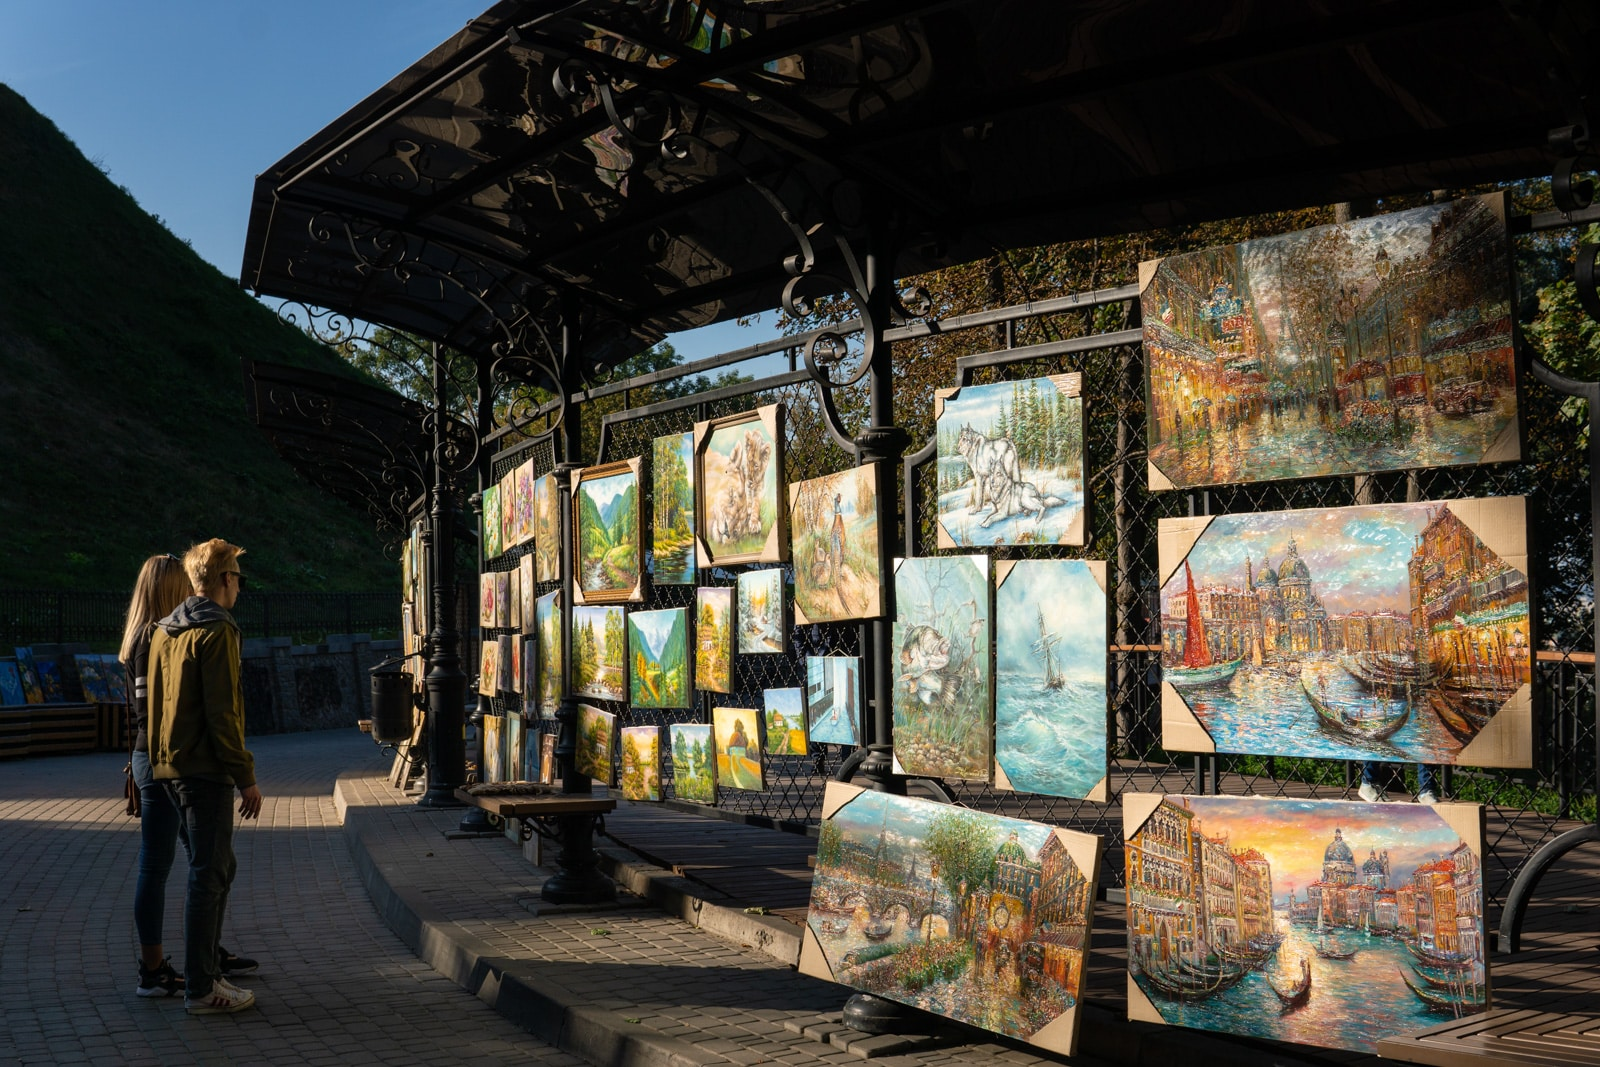 Art for sale in the Podil area of Kyiv, Ukraine